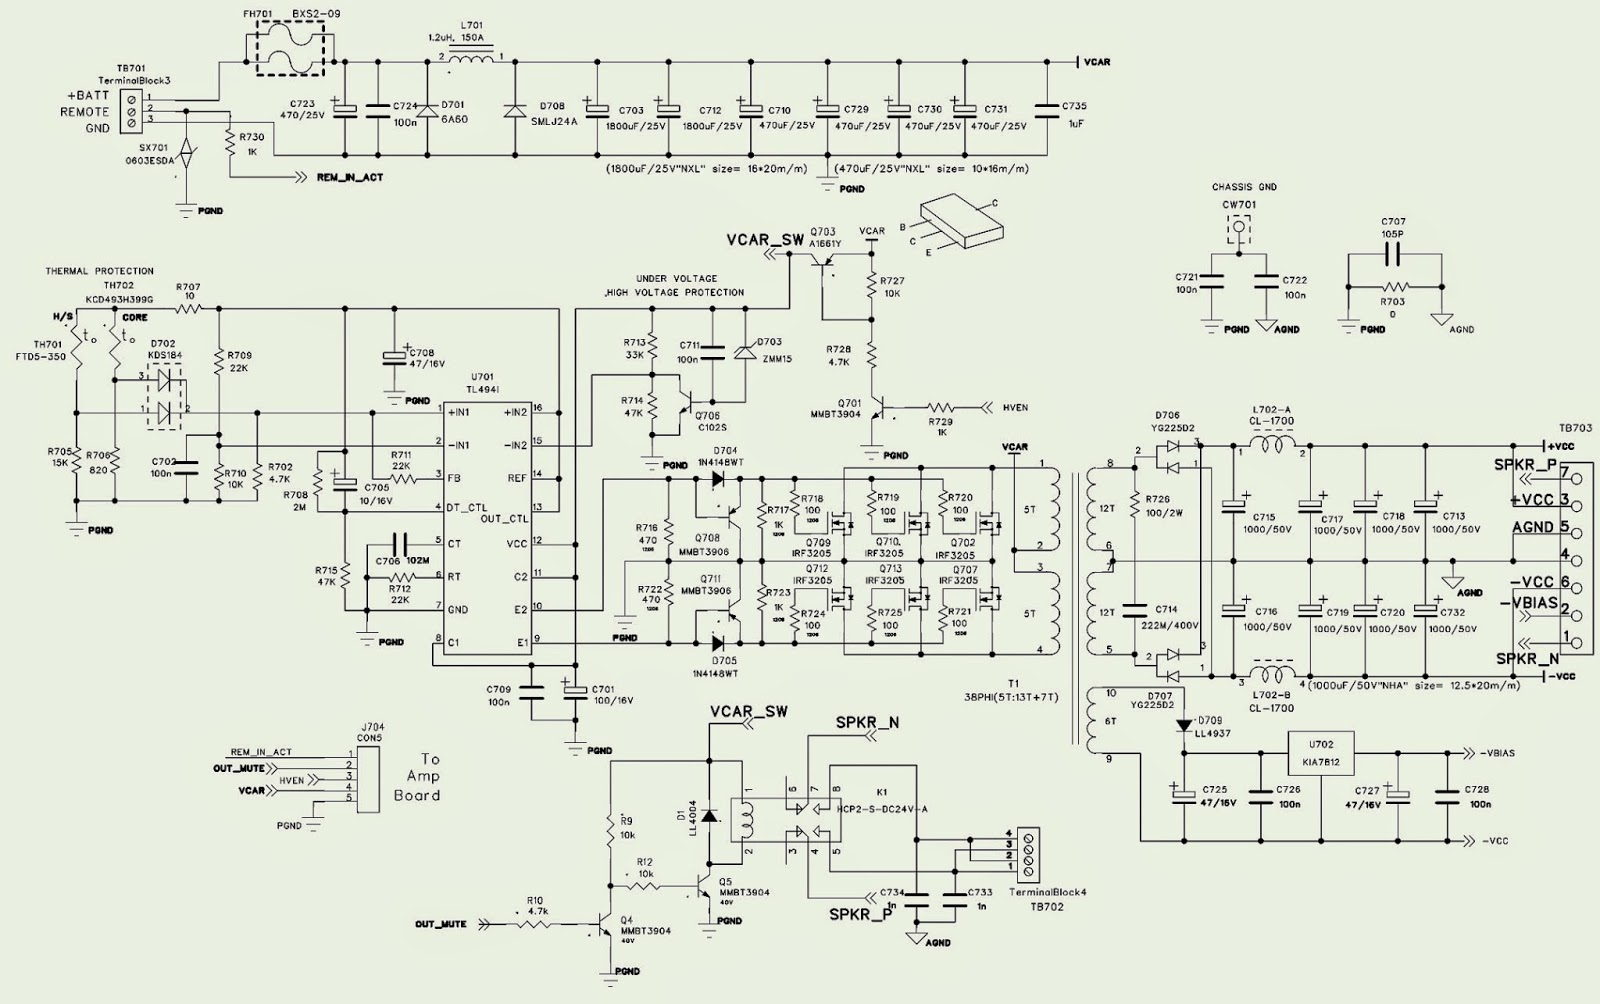 Irf3205 Wiring Diagram 22 Images Diagrams Sine Wave Inverter Circuit Digram With Code Various Jbl Ms A5001 Schematic Power Amplifier And Smps